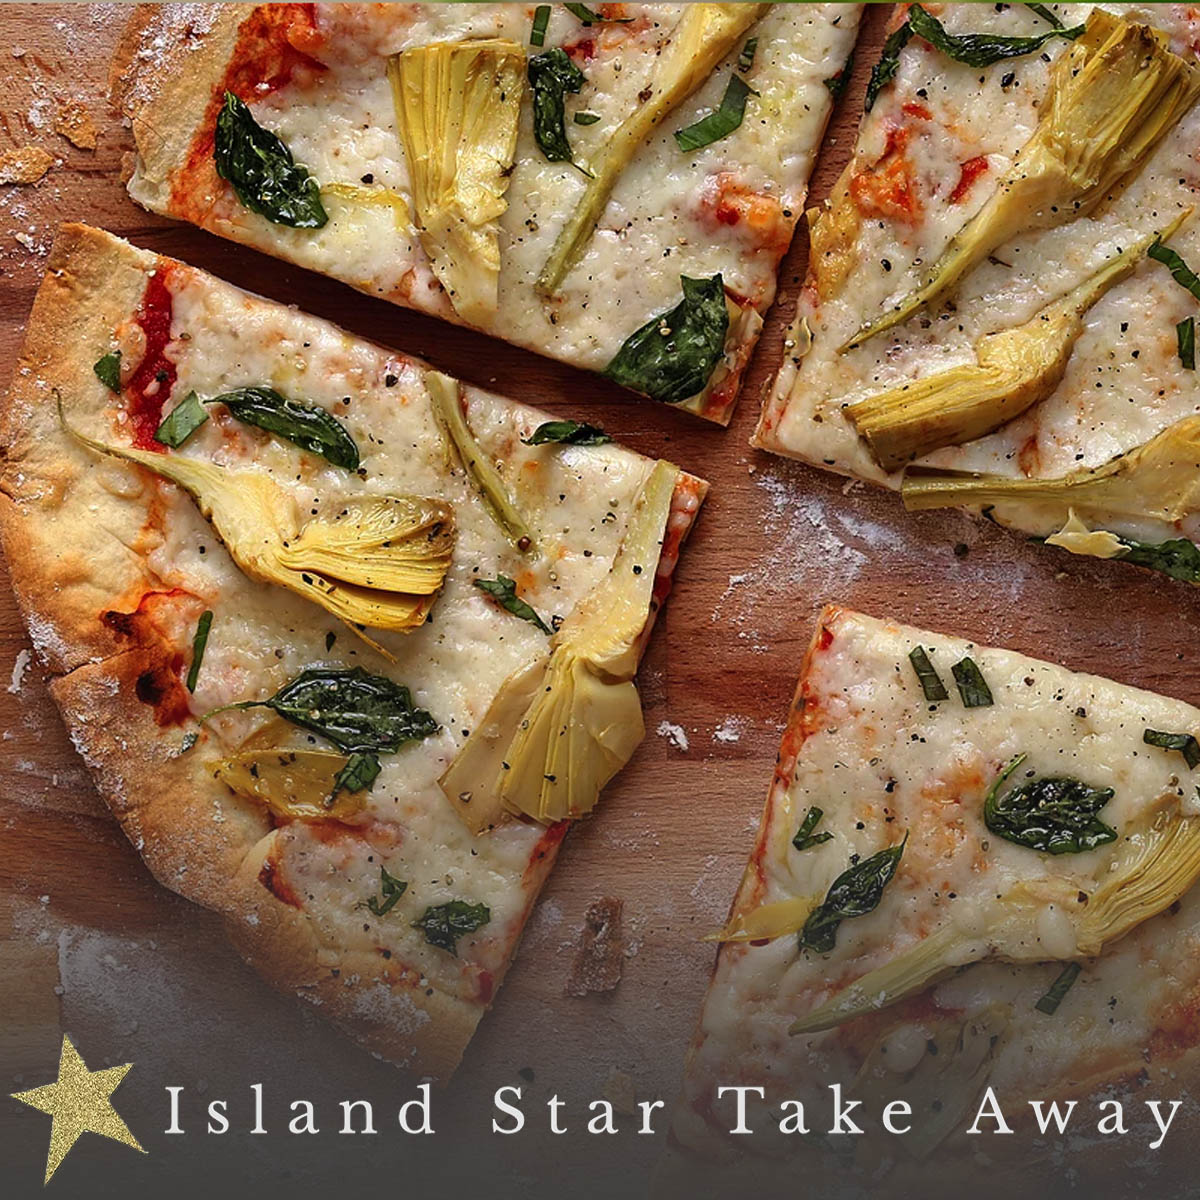 Pizza Party Basket - Want an easy way to entertain or just want a delicious dinner without the hassle? Chef Emily Damon of Island Star Take Away in Town Hill has got you covered! This gift certificate for TEN gourmet pizzas can be redeemed any time July through September. See why Island Star has been such a hit all year 'round!Retail Value: $200.00